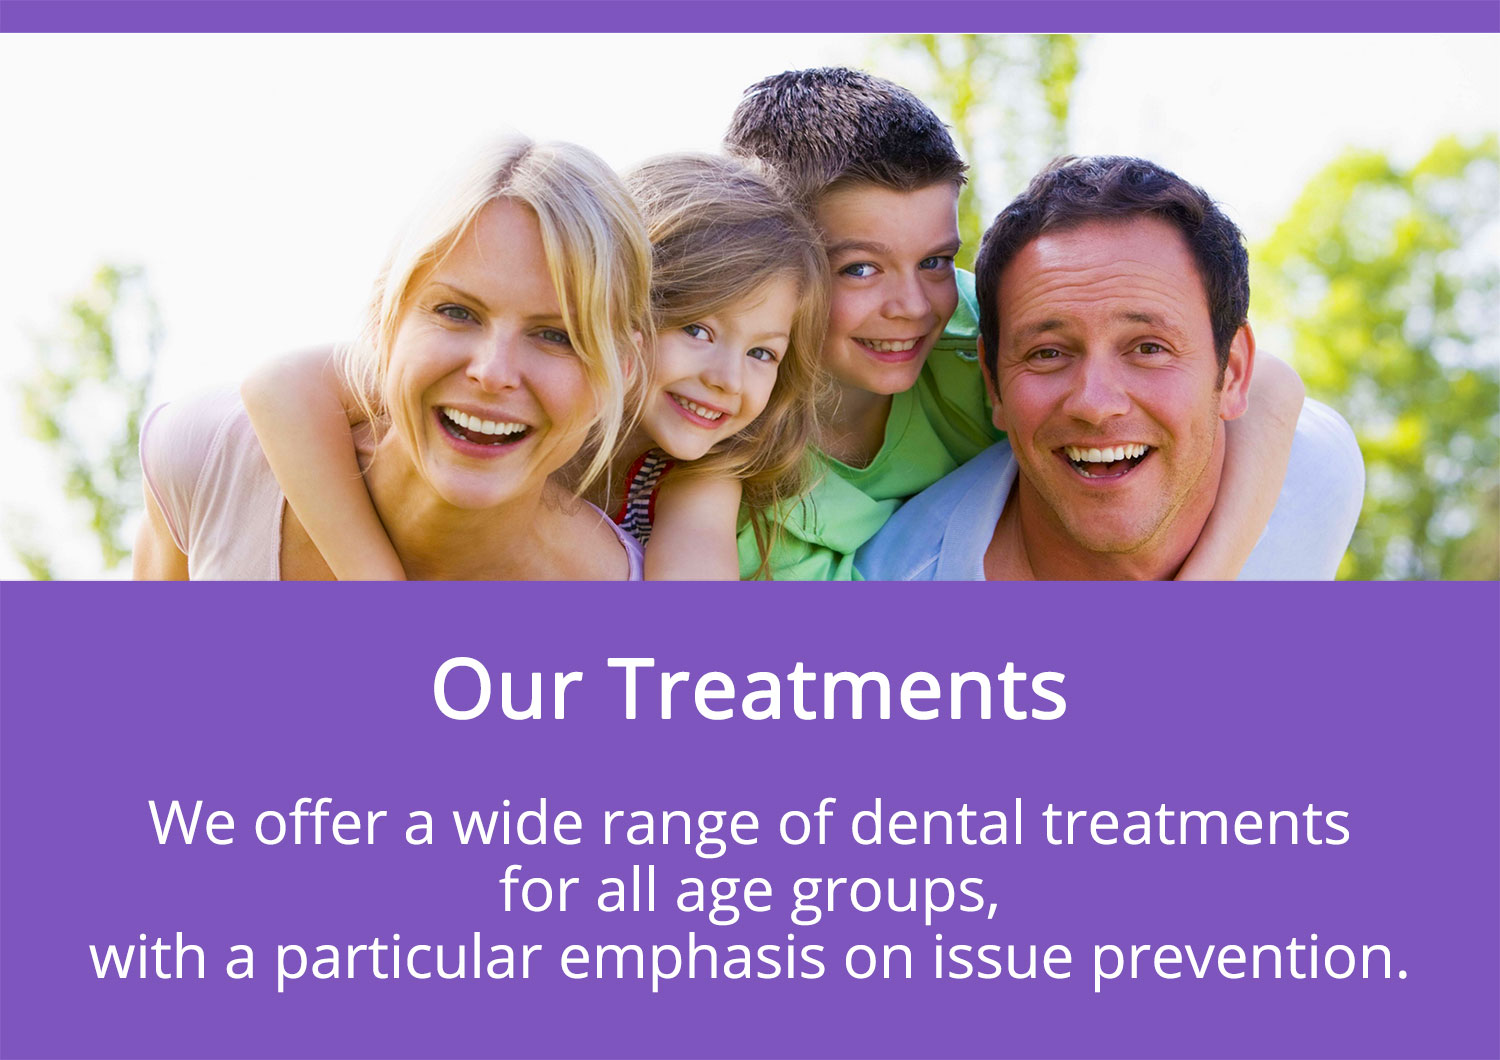 Our Treatments - Diana Smile Dental Clinic